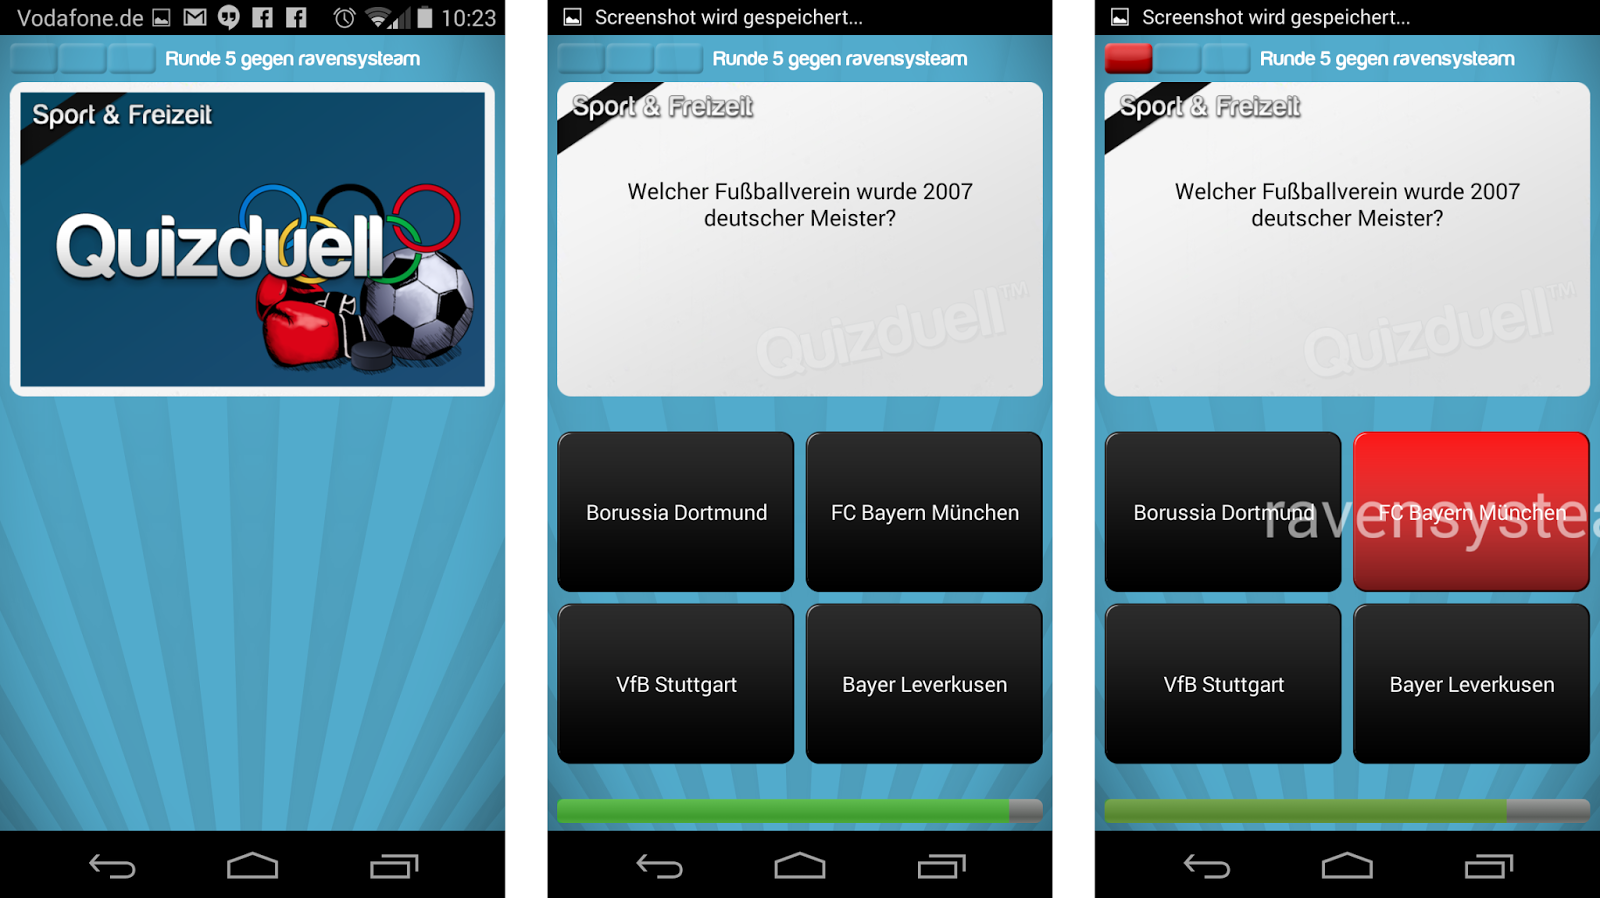 Quizduell Tipps